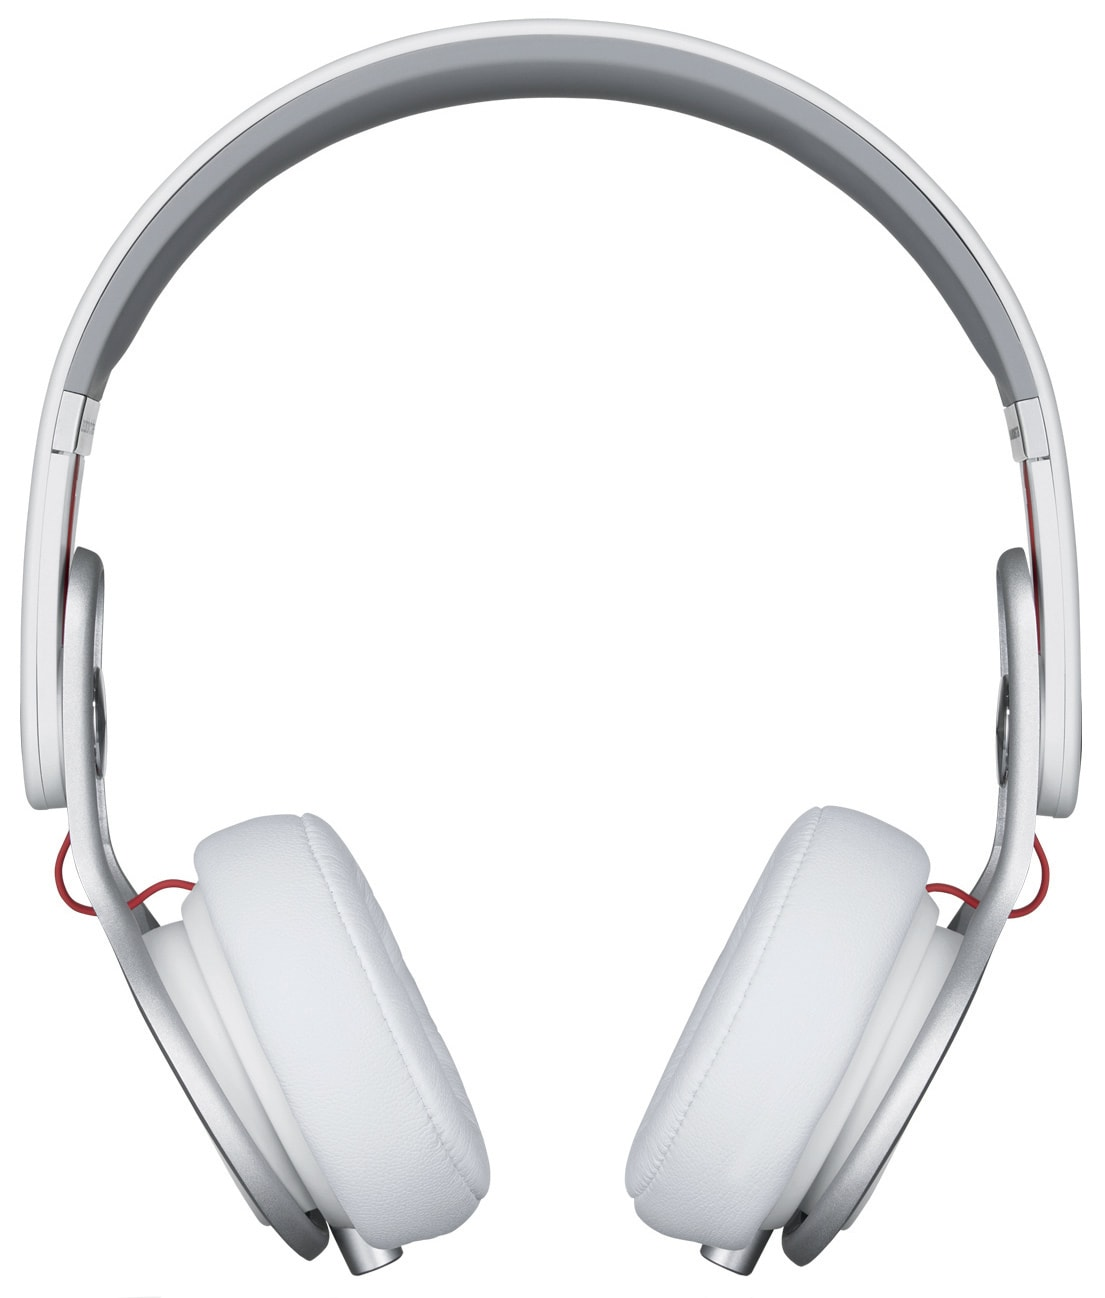 309a48992d3 Beats Mixr Headphones Cord - Image Of Headphone Imageso.Co